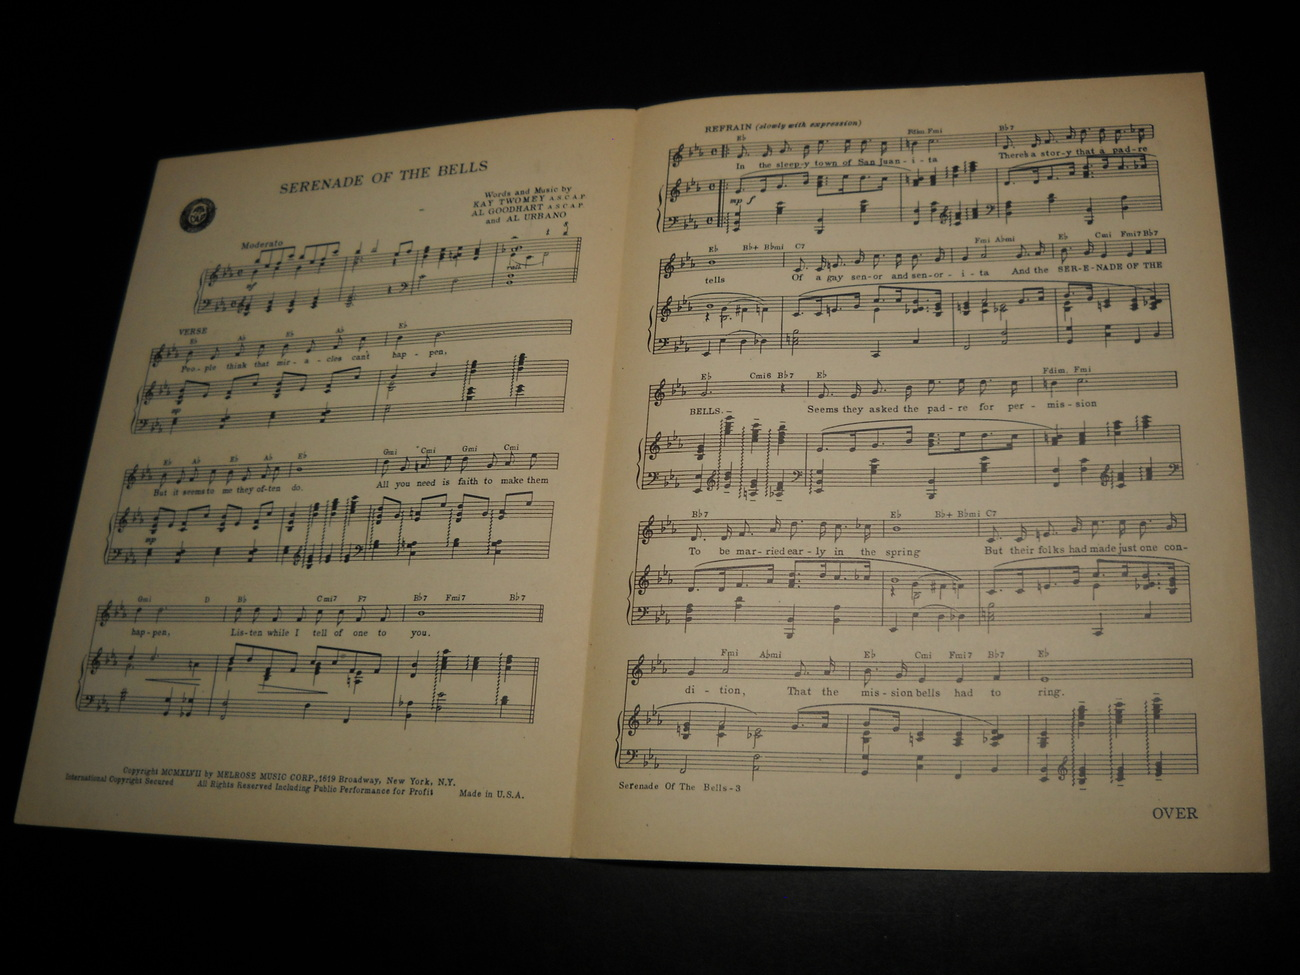 Sheet_music_serenade_of_the_bells_twomey_goodhardt_urbano_1947_melrose_04